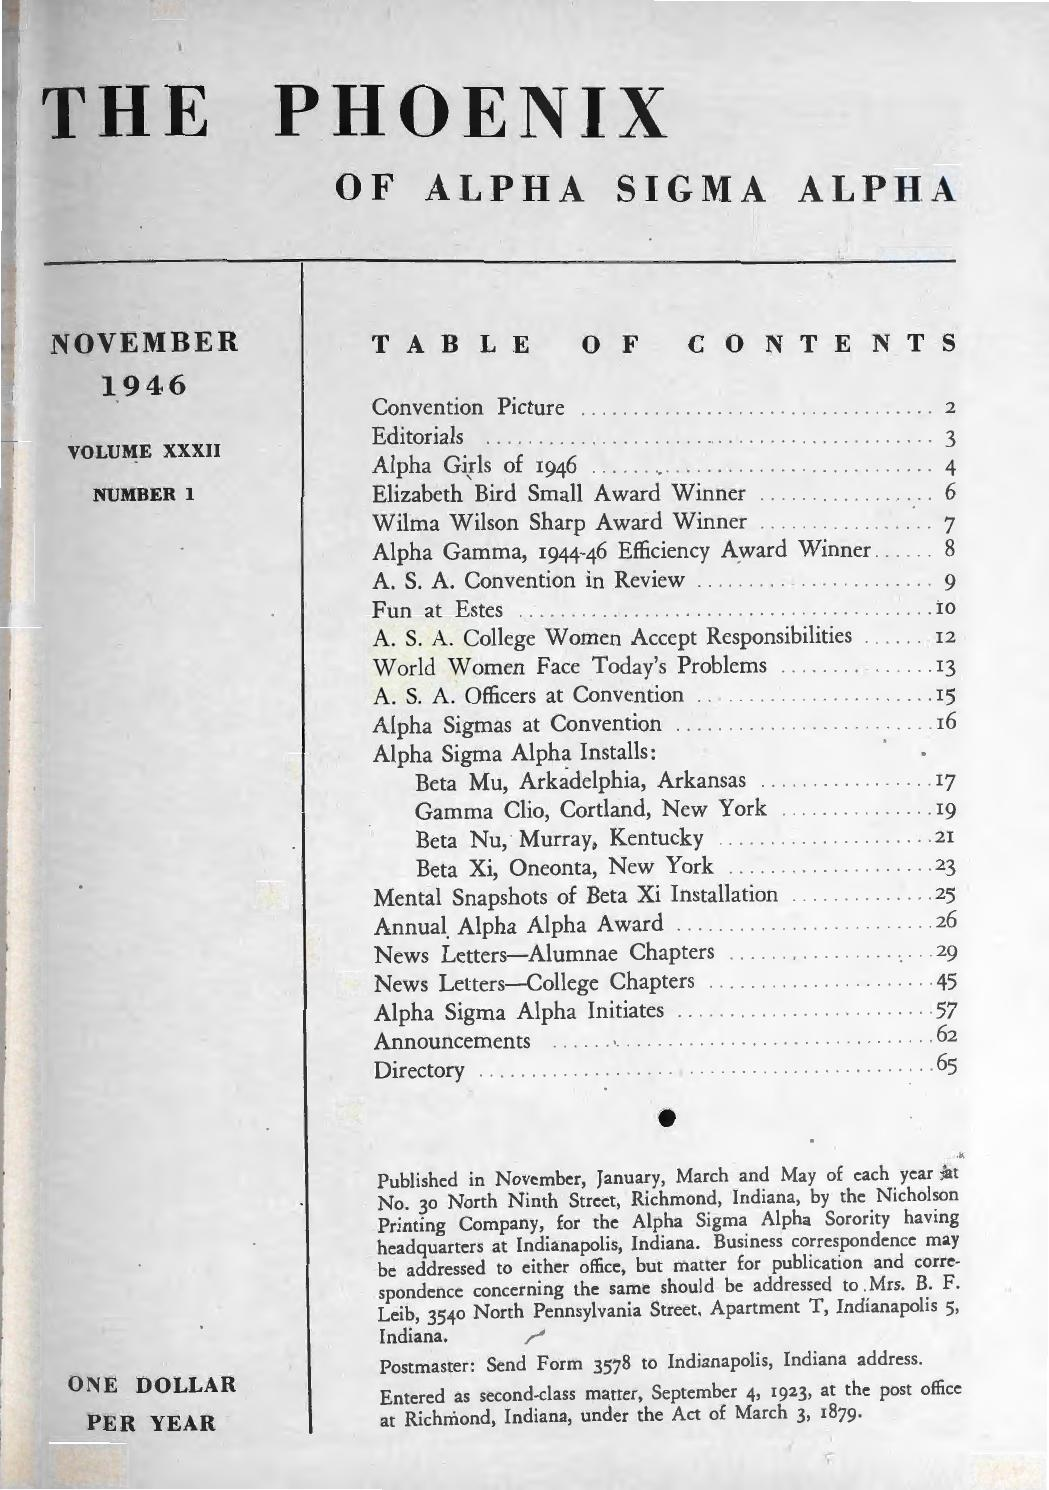 Asa Phoenix Vol 32 No 1 Nov 1946 By Alpha Sigma Sorority Issuu Free Unit 6g Changing Circuits Printable Resource Worksheets For Kids